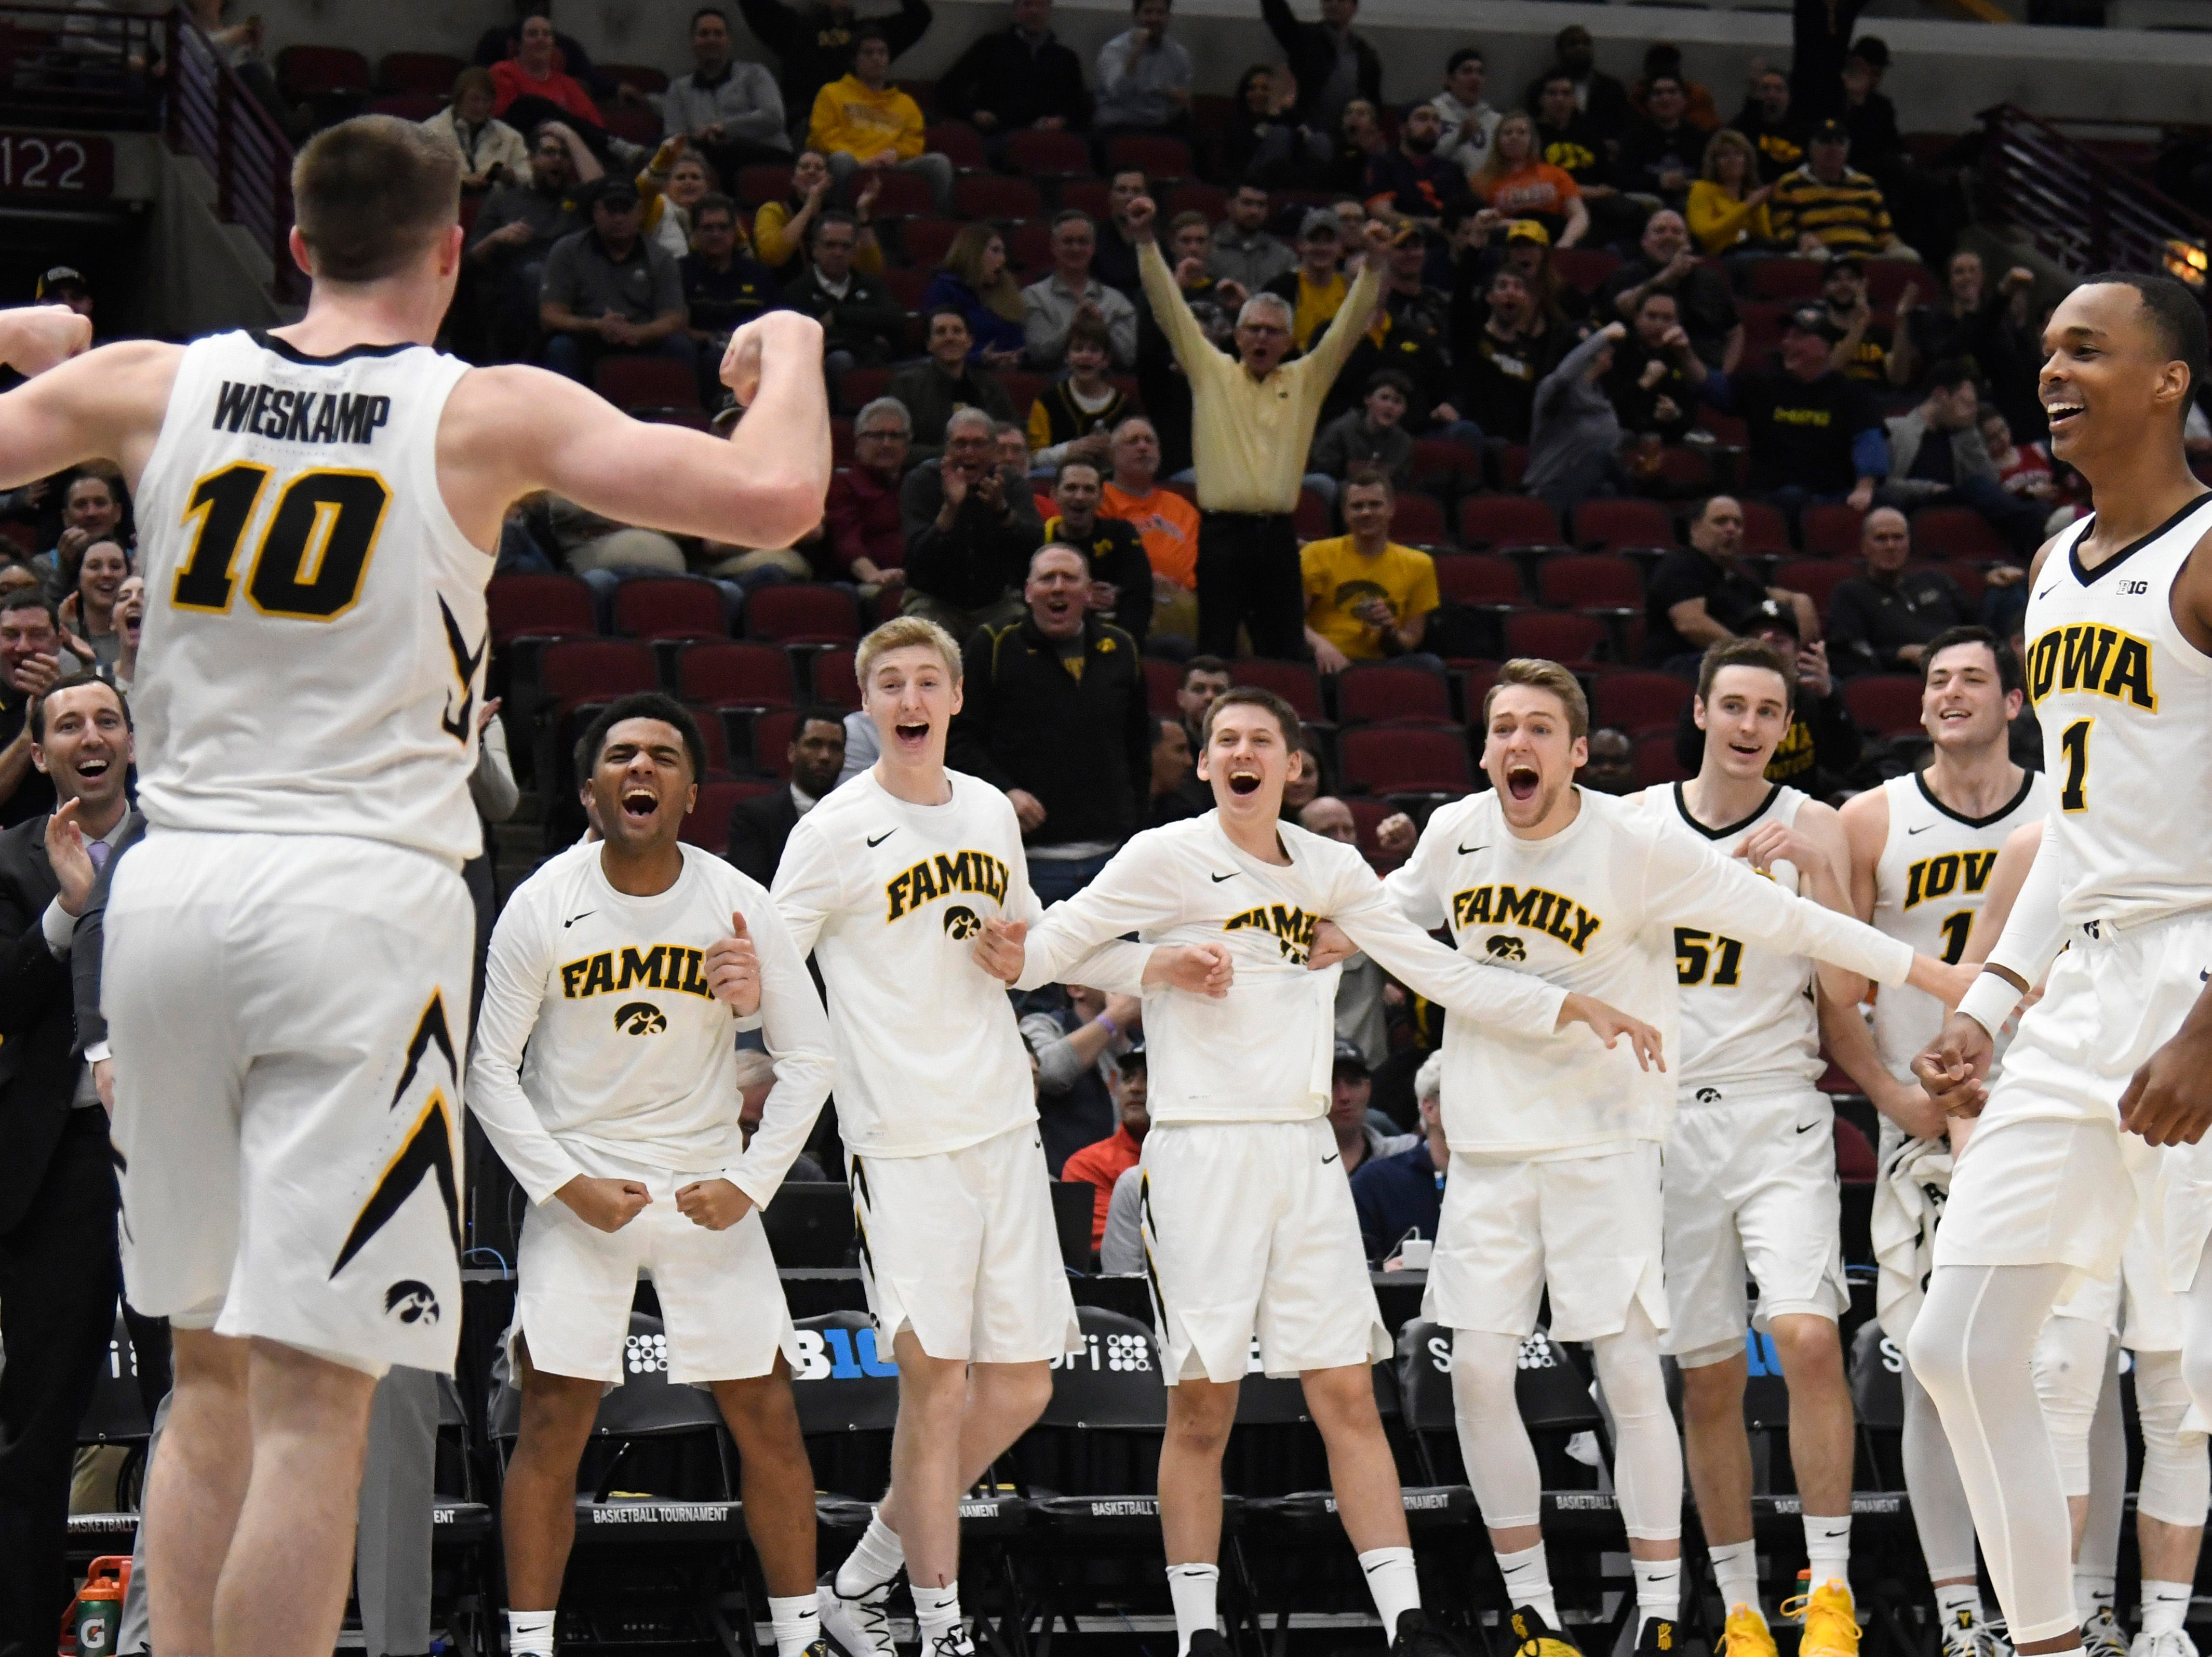 Mar 14, 2019; Chicago, IL, USA; Iowa Hawkeyes guard Joe Wieskamp (10) reacts with his teammates after his dunk against the Illinois Fighting Illini during the second half in the Big Ten conference tournament at United Center. Mandatory Credit: David Banks-USA TODAY Sports